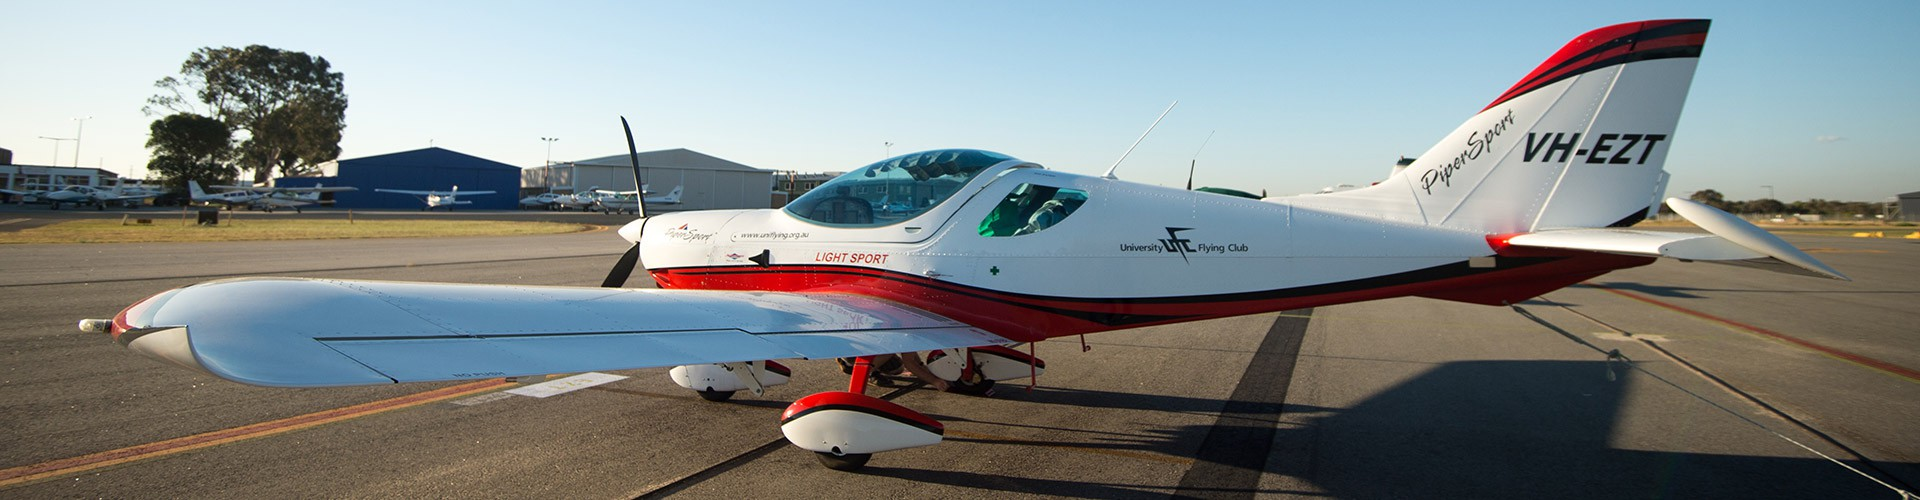 vh-ezt-parking-university-flying-club-jandakot-airport-learn-to-fly-vh-ezt-pipersport-sportscruiser-csa-lsa-rpl-ppl-private-pilot